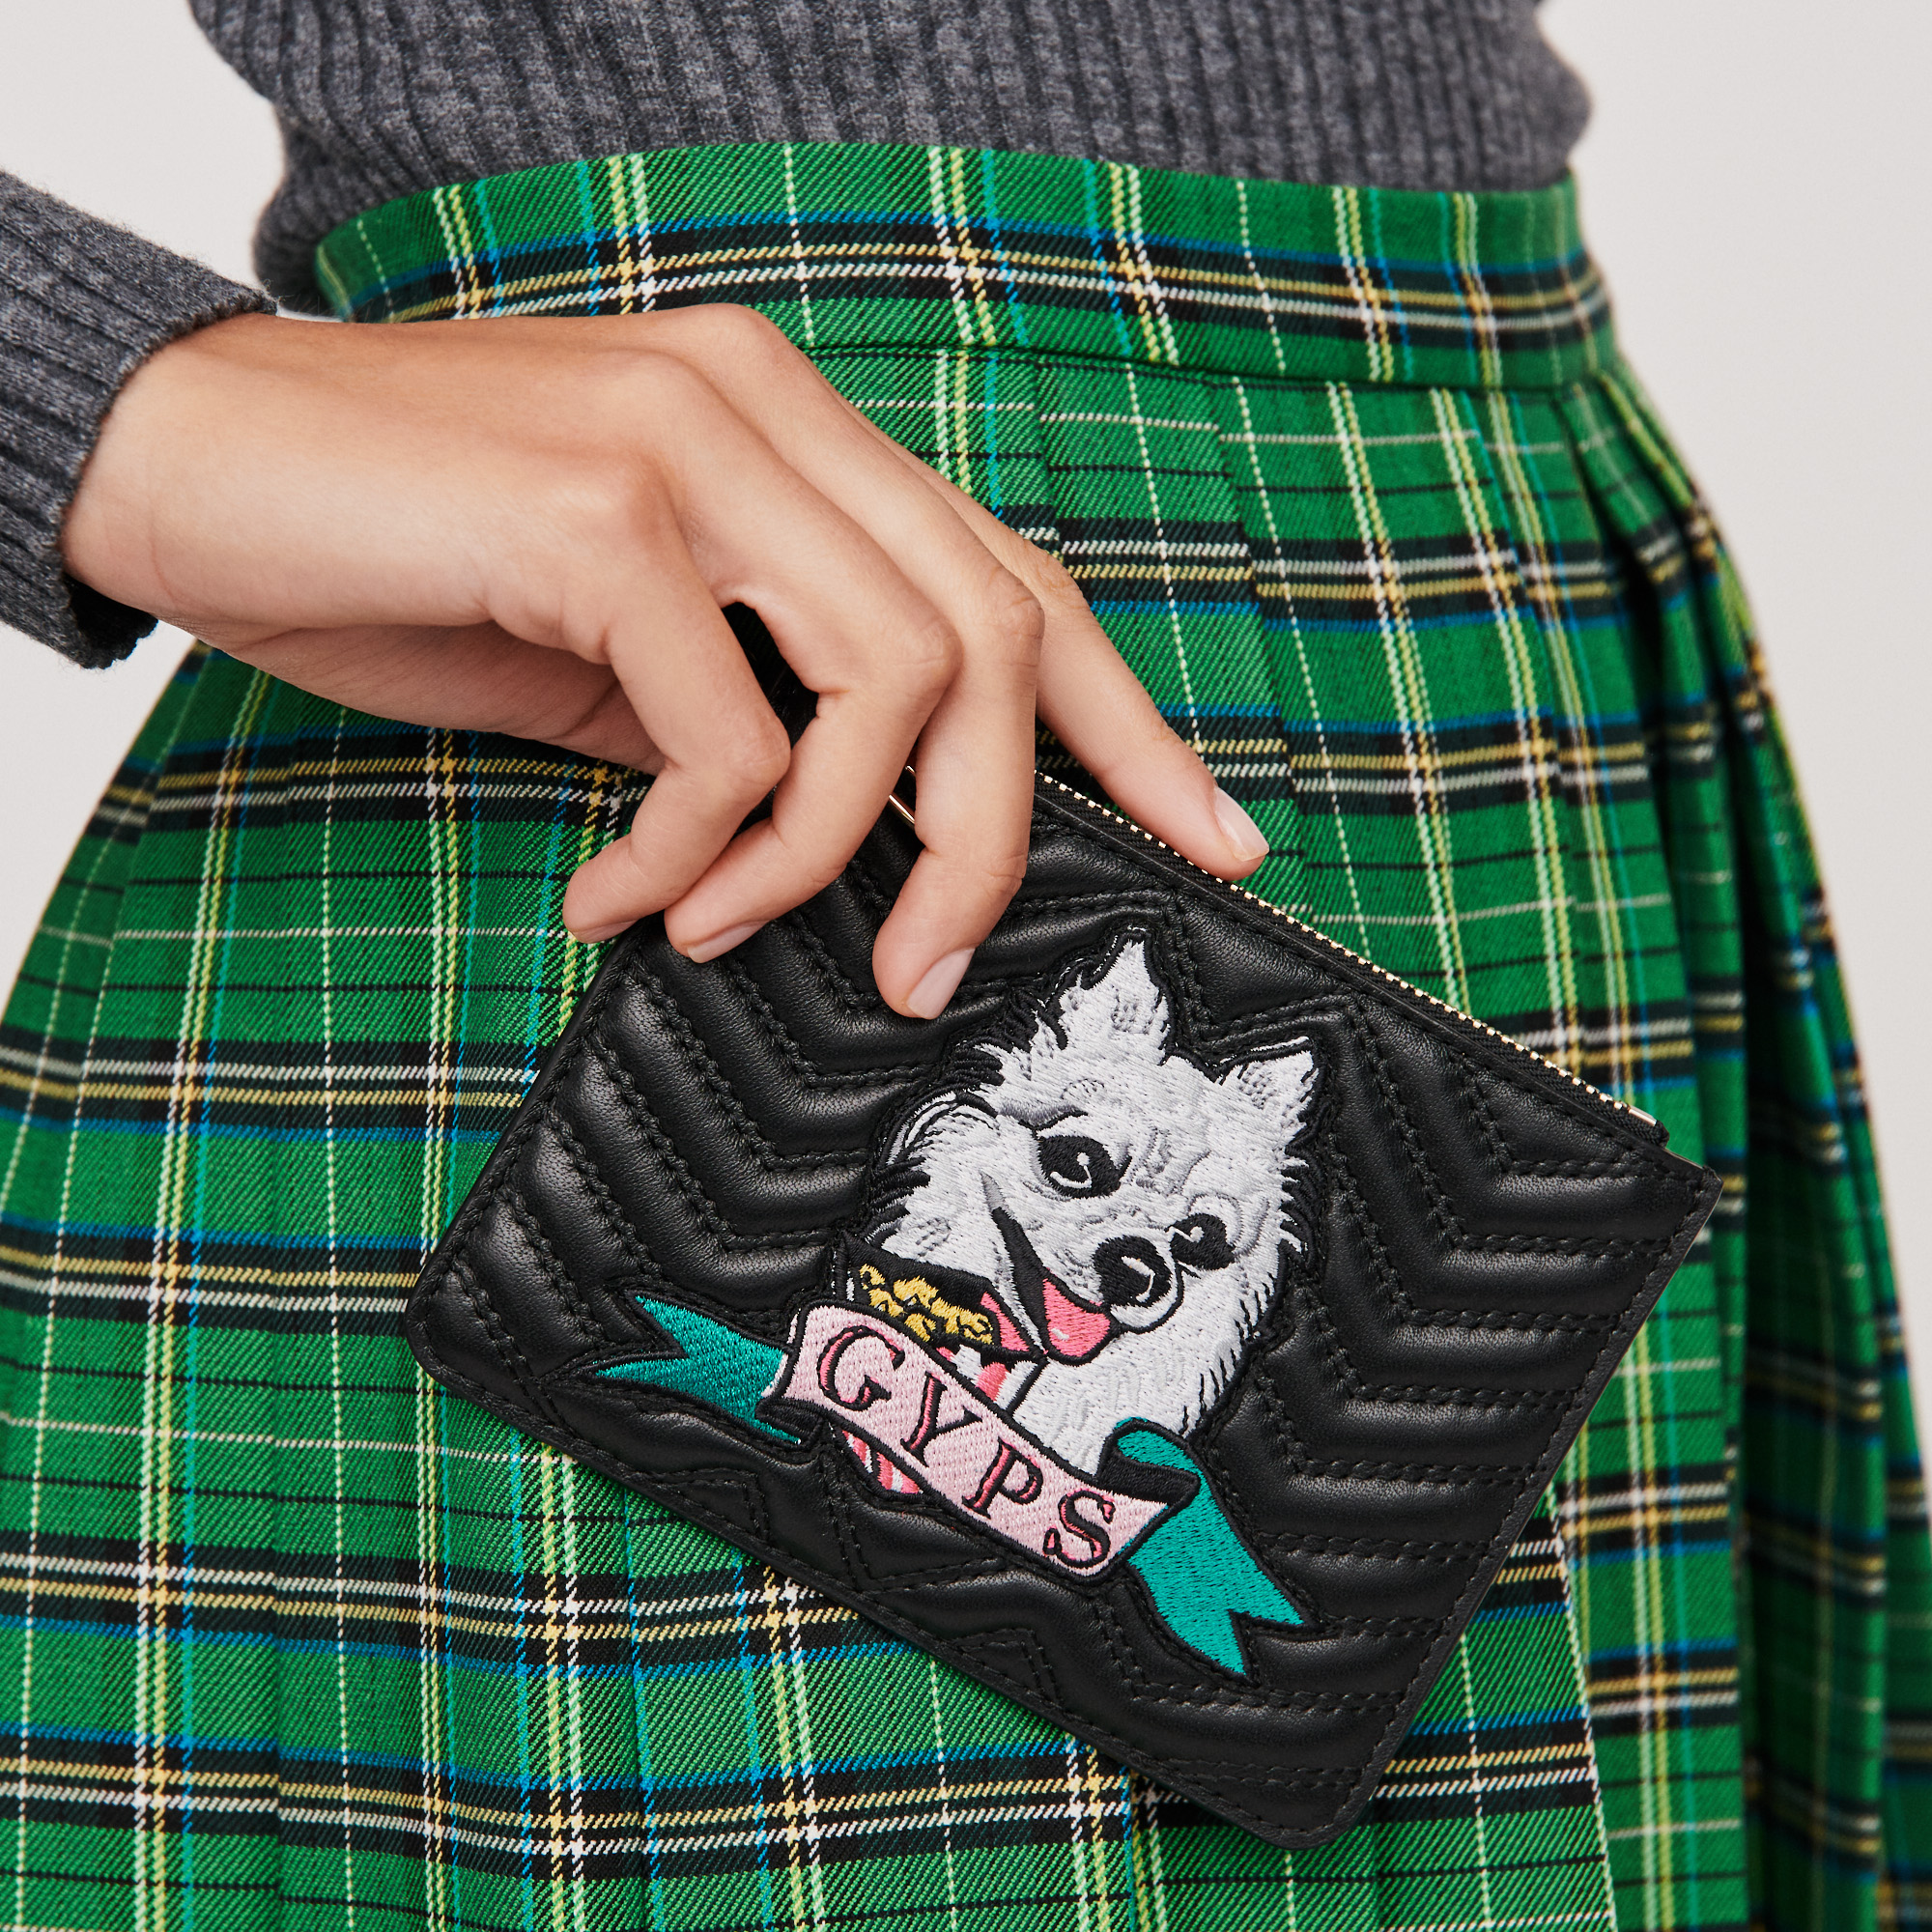 Gyps zipped quilted leather clutch - Black